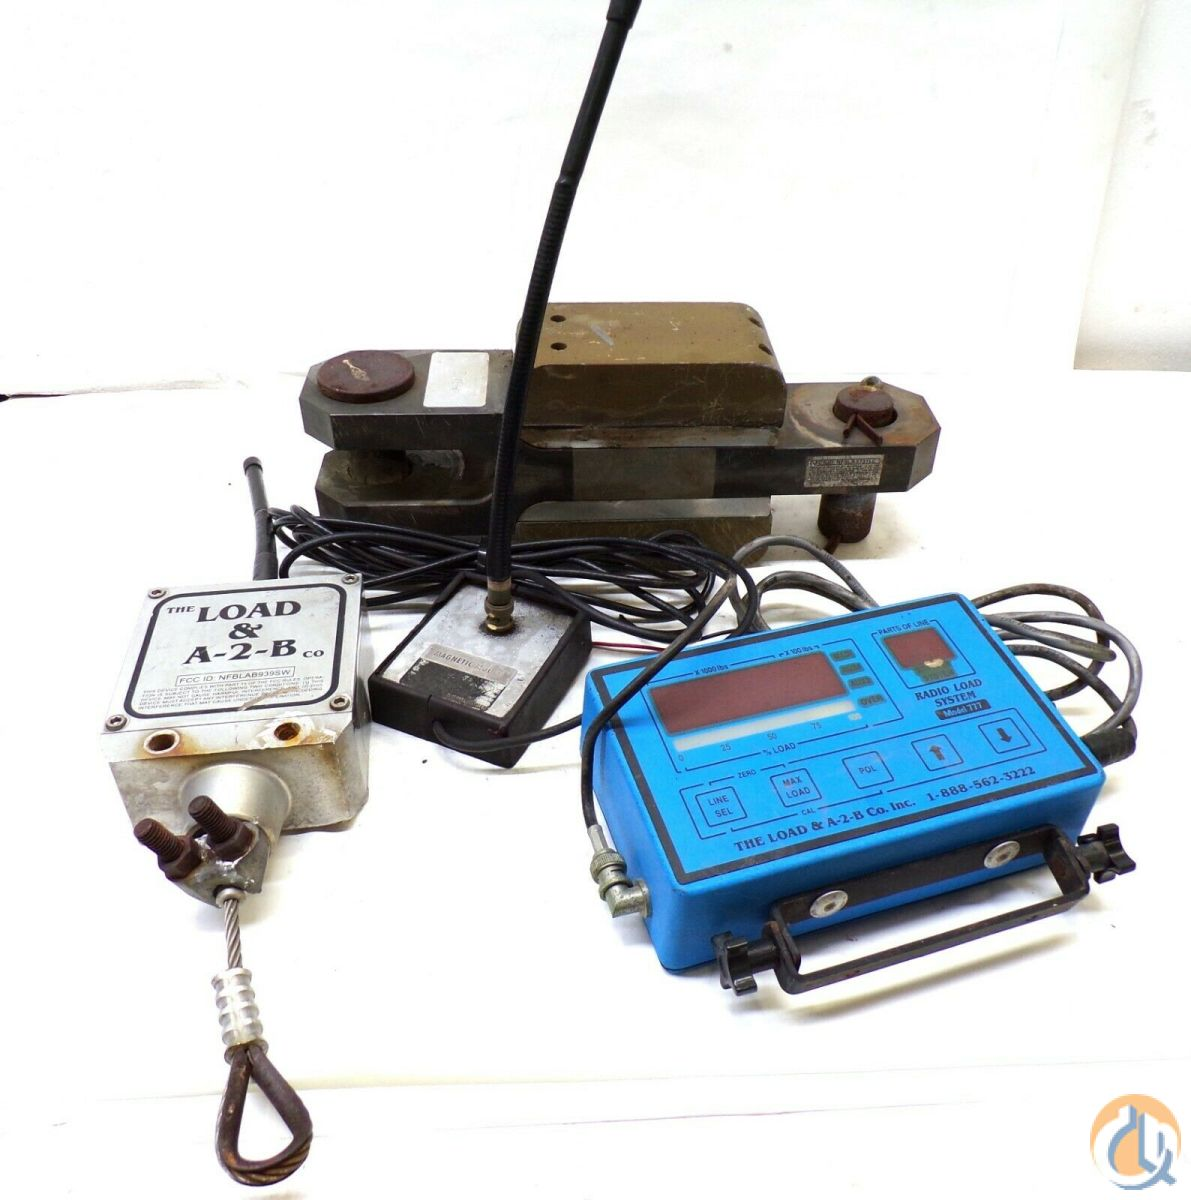 Cranesmart CRANESMART LOAD INDICATION SYSTEM A2B SWITCH DISPLAY PANEL ATB Systems Crane Part for Sale in Coffeyville Kansas on CraneNetwork.com